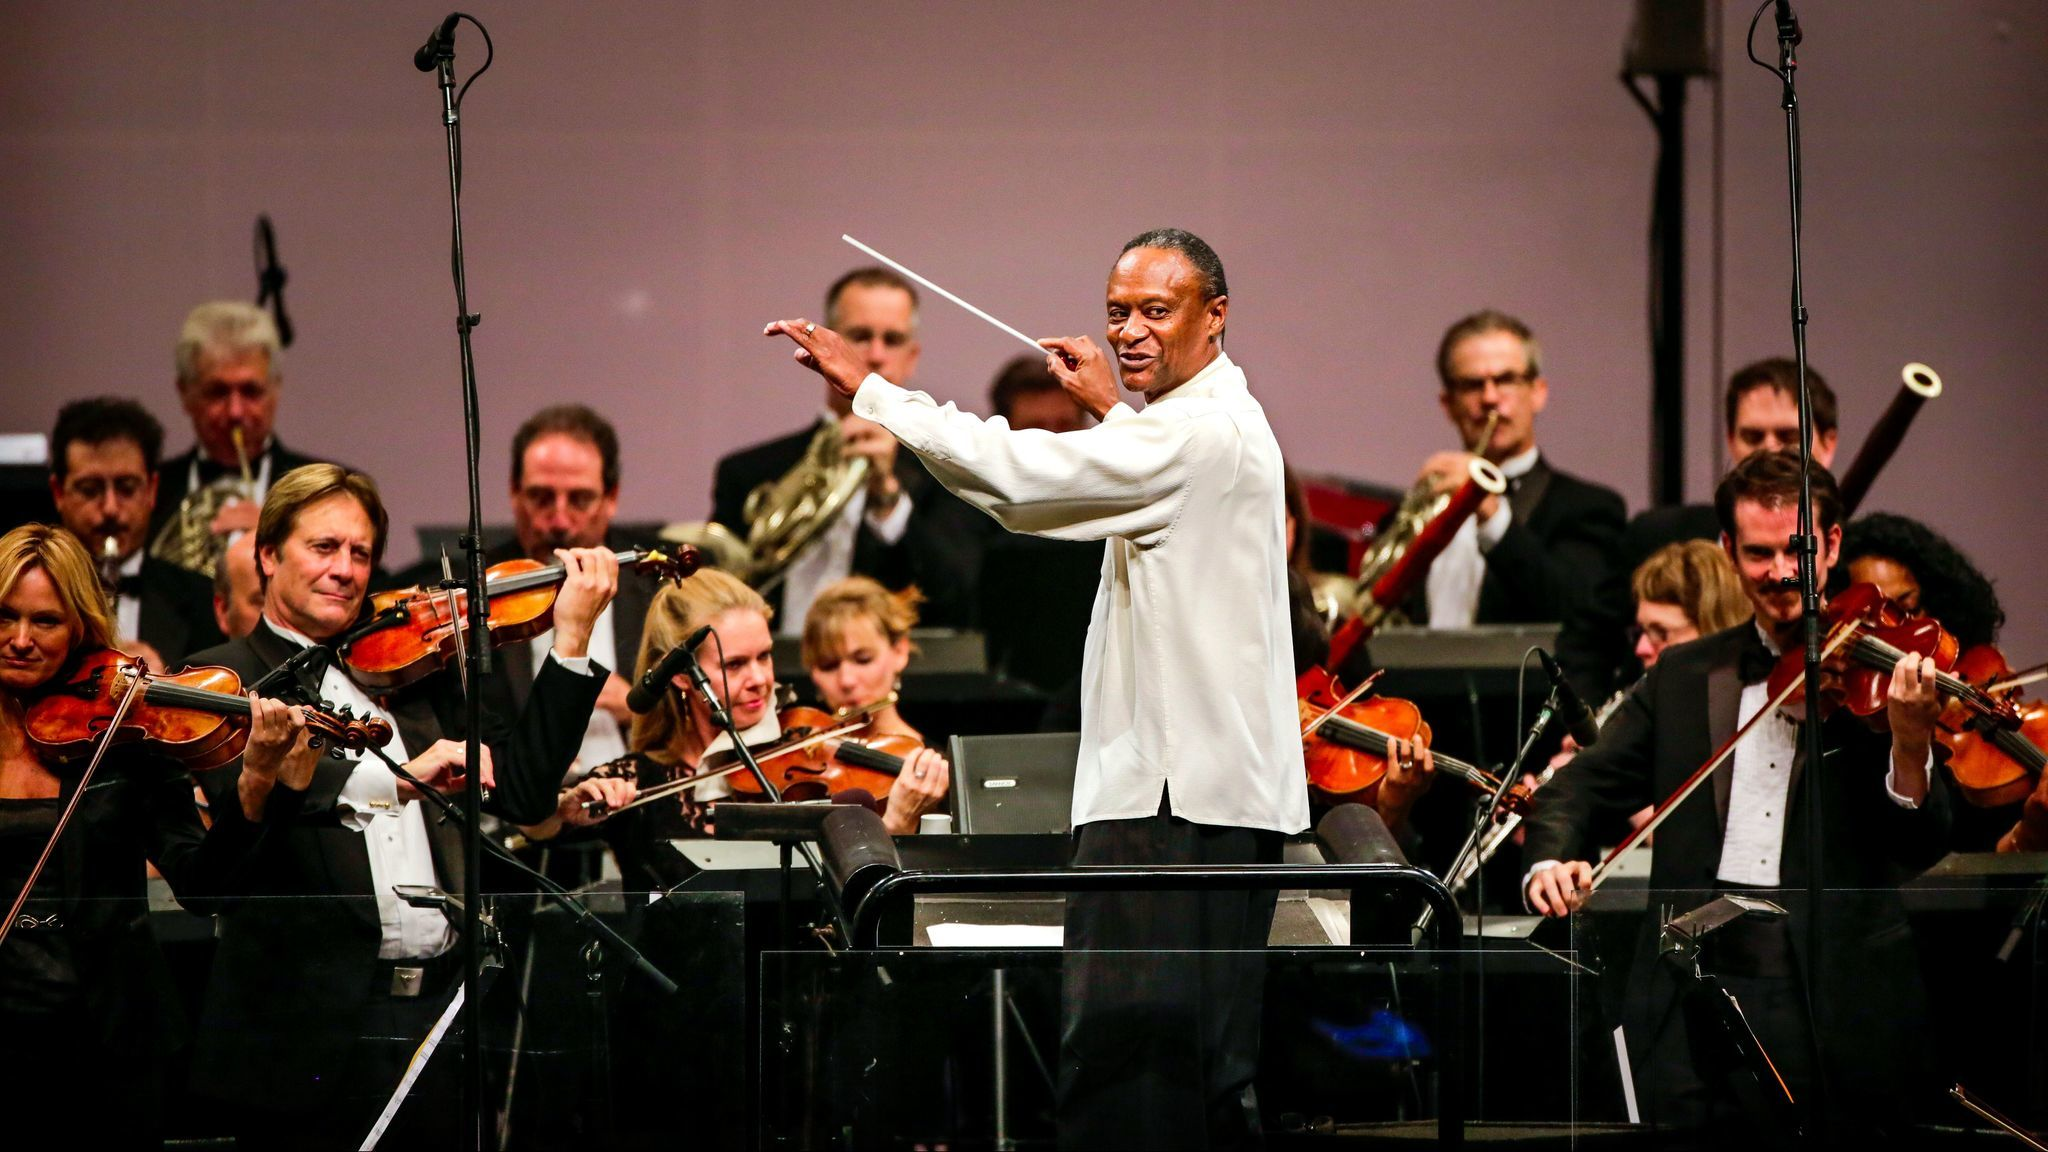 Wilkins at work with the Hollywood Bowl Orchestra in 2013.